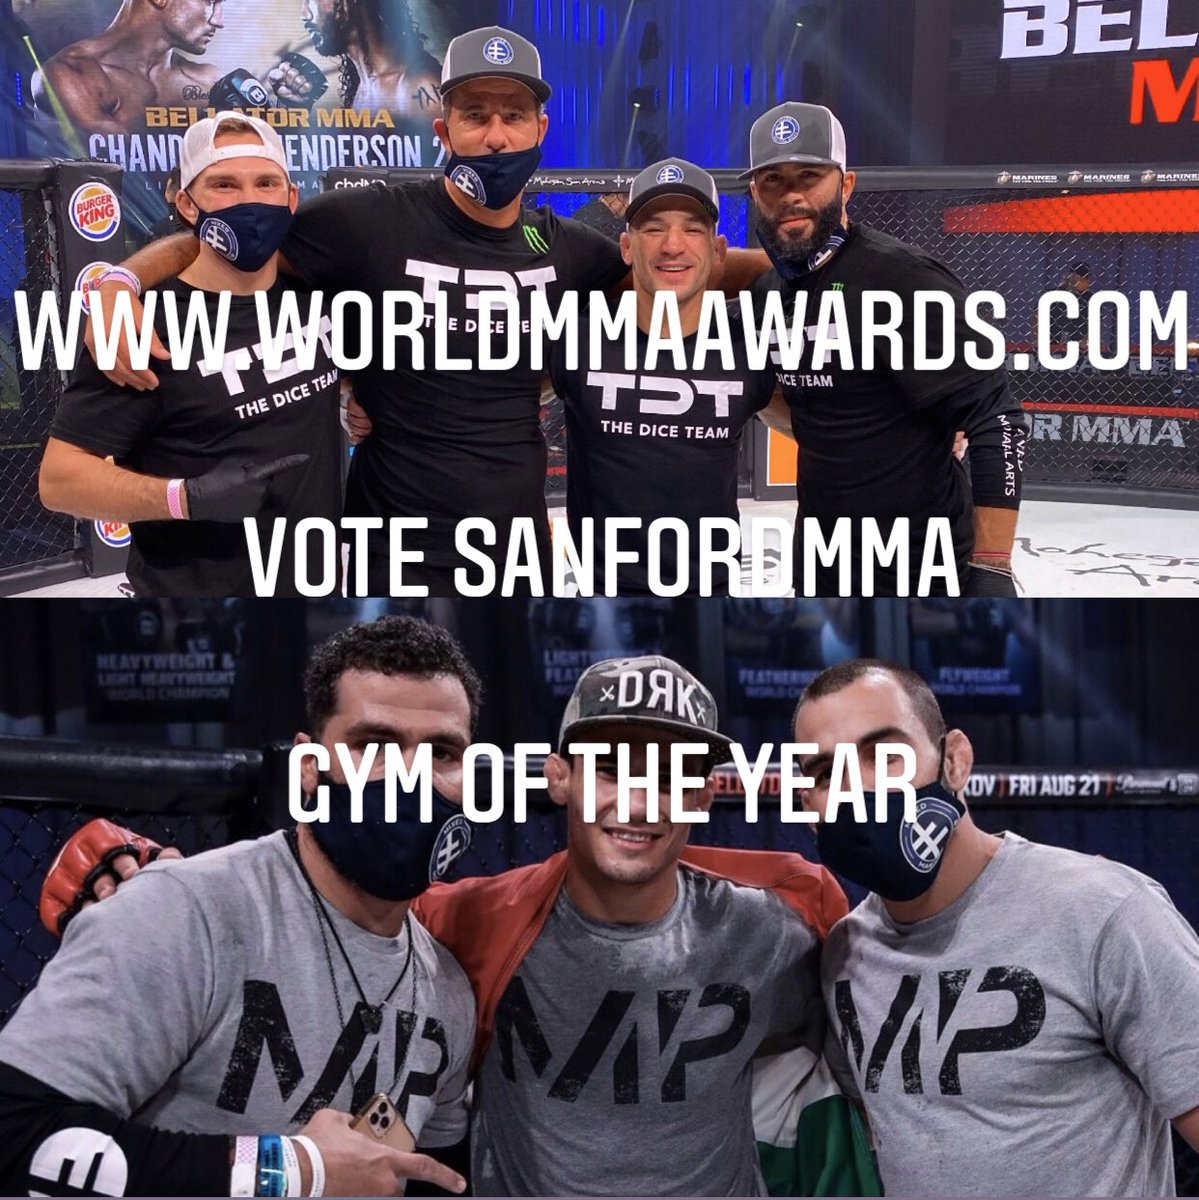 Vote SanfordMMA as Gym of the Year!  @WorldMMAAwards @henrihooft @CoachGJones @ssorianoMMA #sanfordmma #ufc #bellator #one #MMA #MMATwitter https://t.co/aPoeMyqQGZ